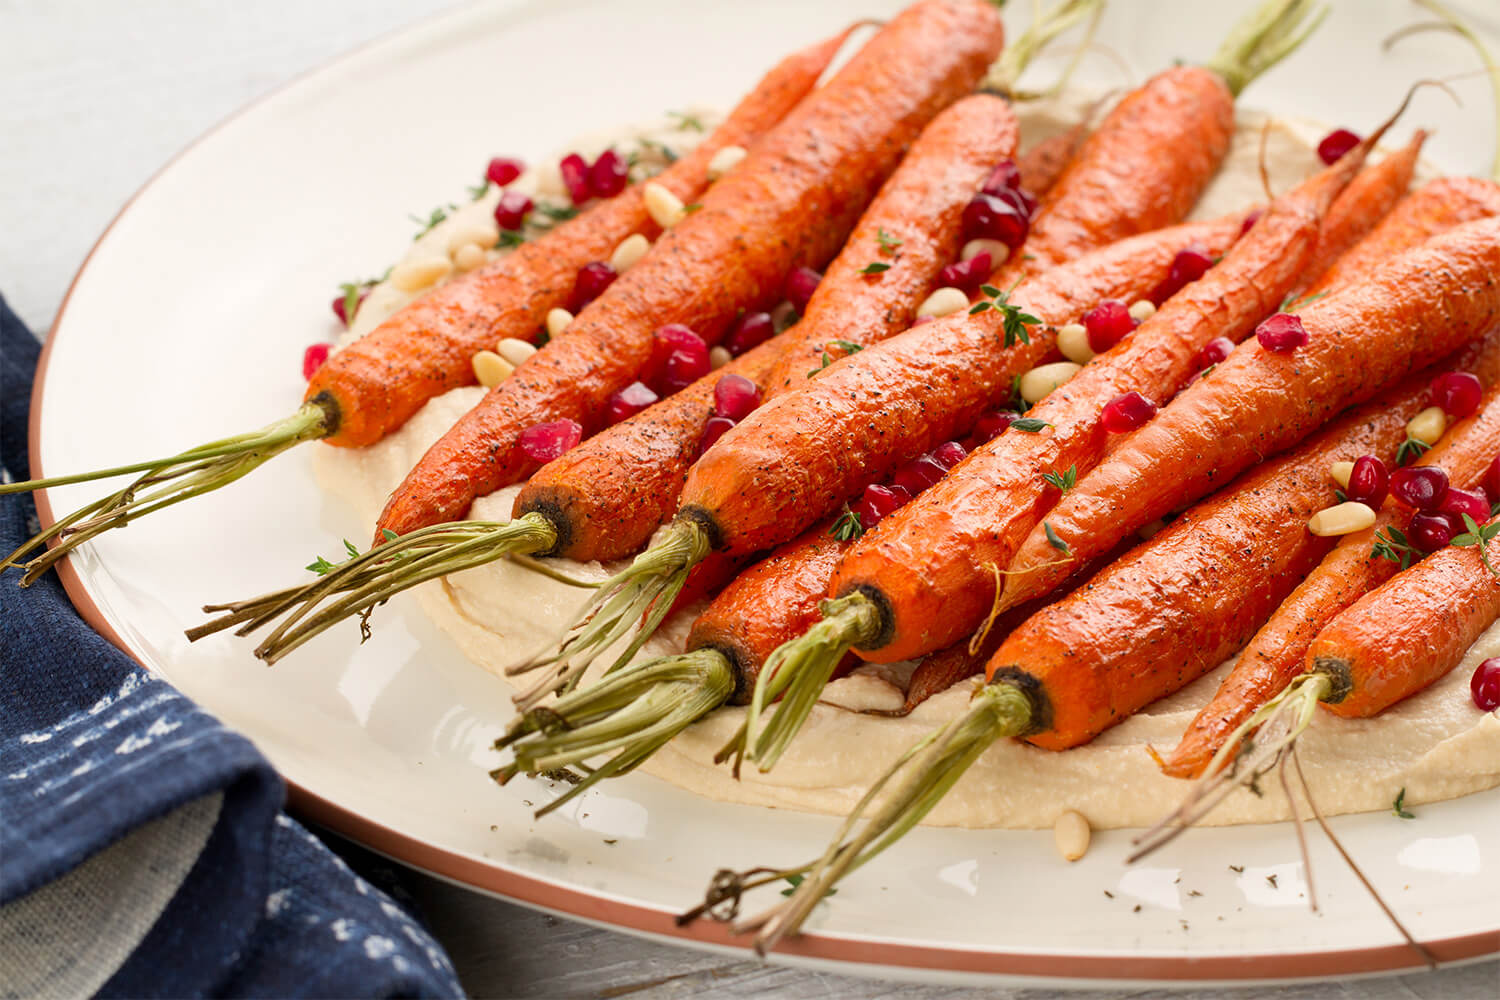 Whole-Roasted-Carrots-with-Topped-Organic-Garlic-Hommus.jpg